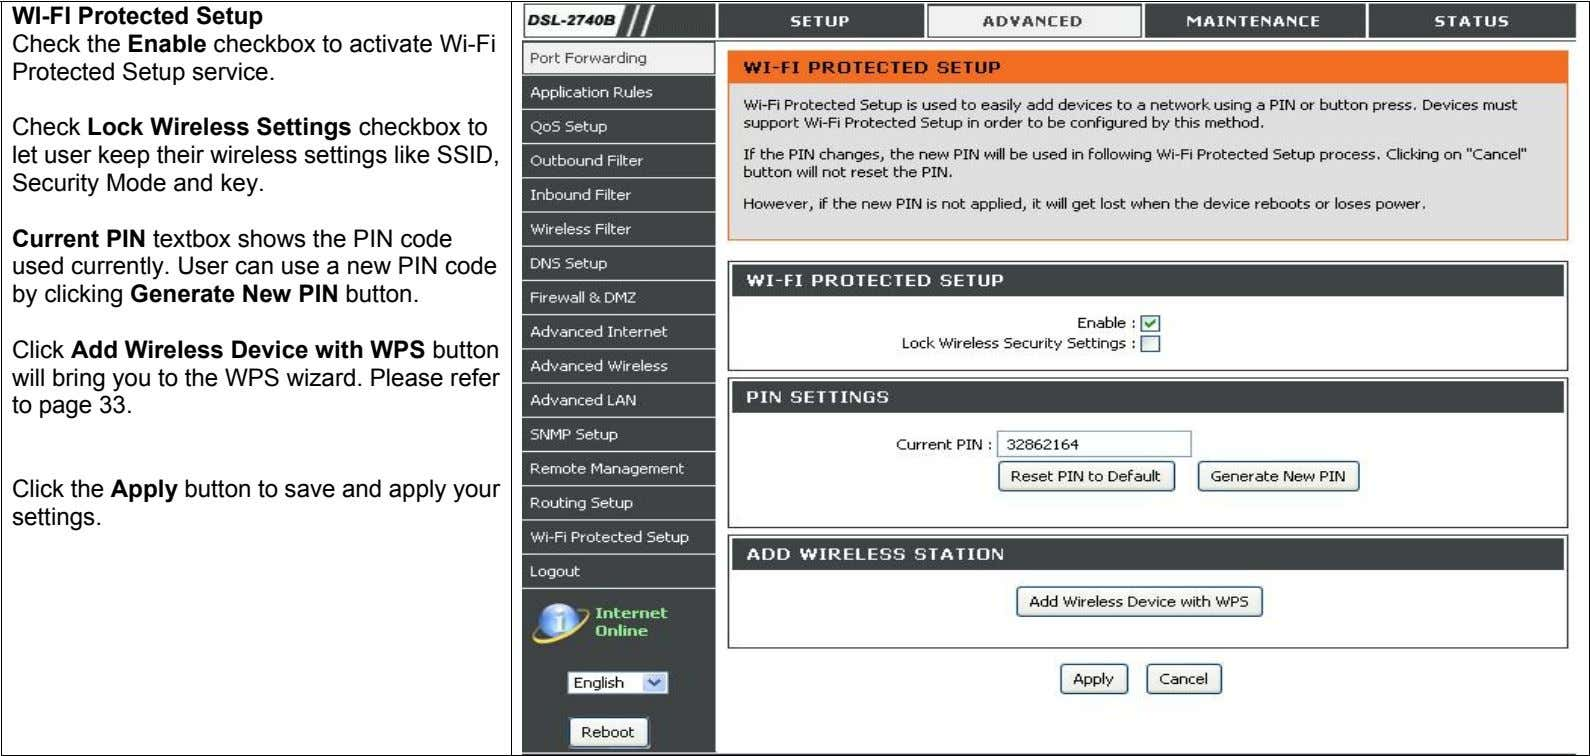 WI-FI Protected Setup Check the Enable checkbox to activate Wi-Fi Protected Setup service. Check Lock